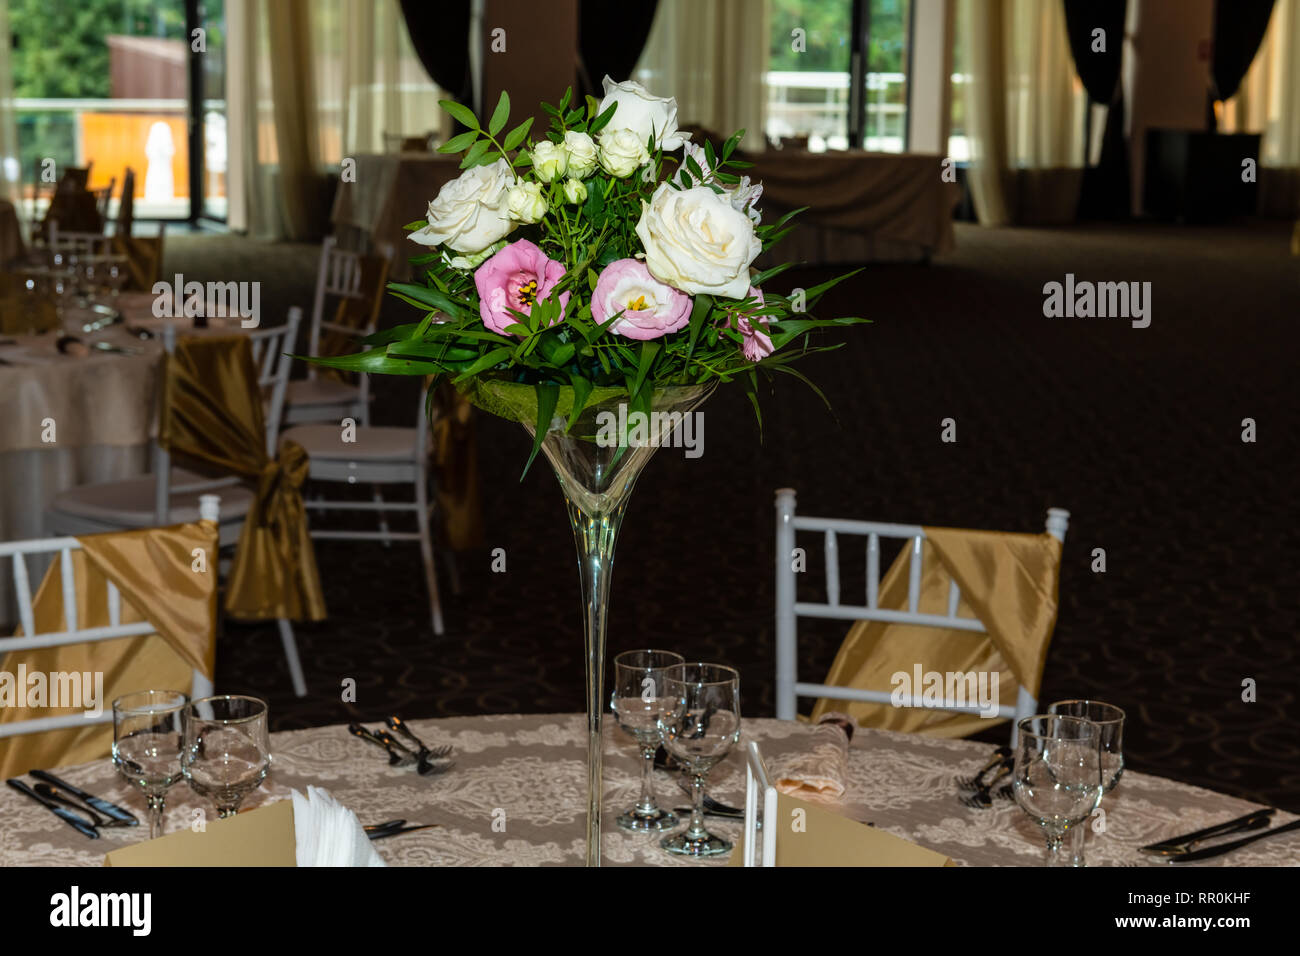 Superb Floral Centerpiece At Luxury Elegant Wedding Reception Best Image Libraries Weasiibadanjobscom